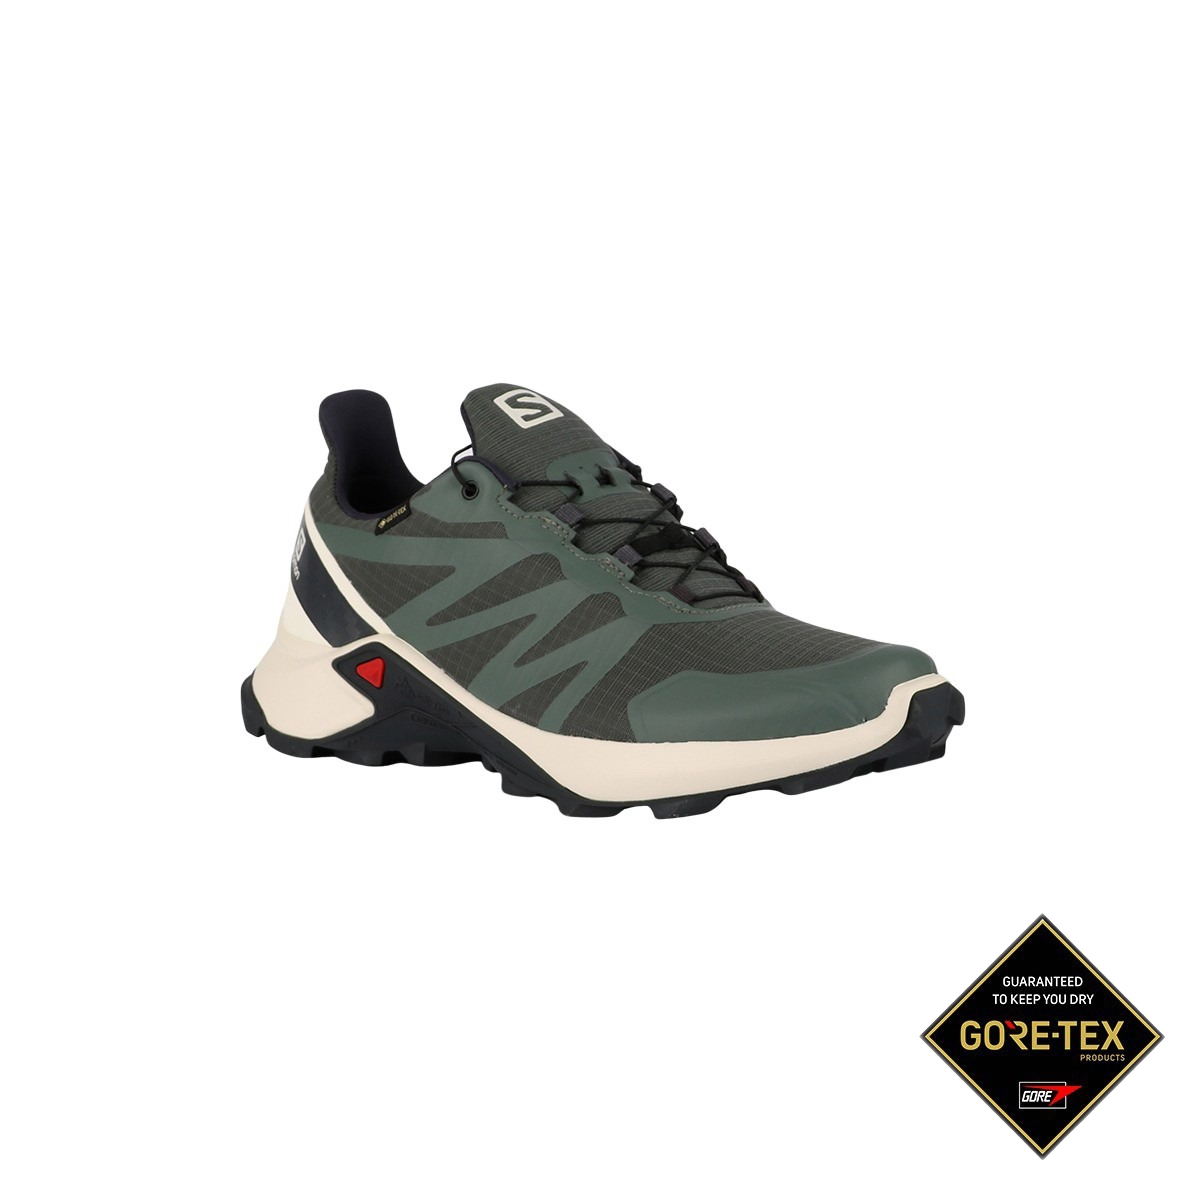 Salomon Zapatilla Supercross GTX Balsam Green Vanilla Ice India Ink Verde Hombre